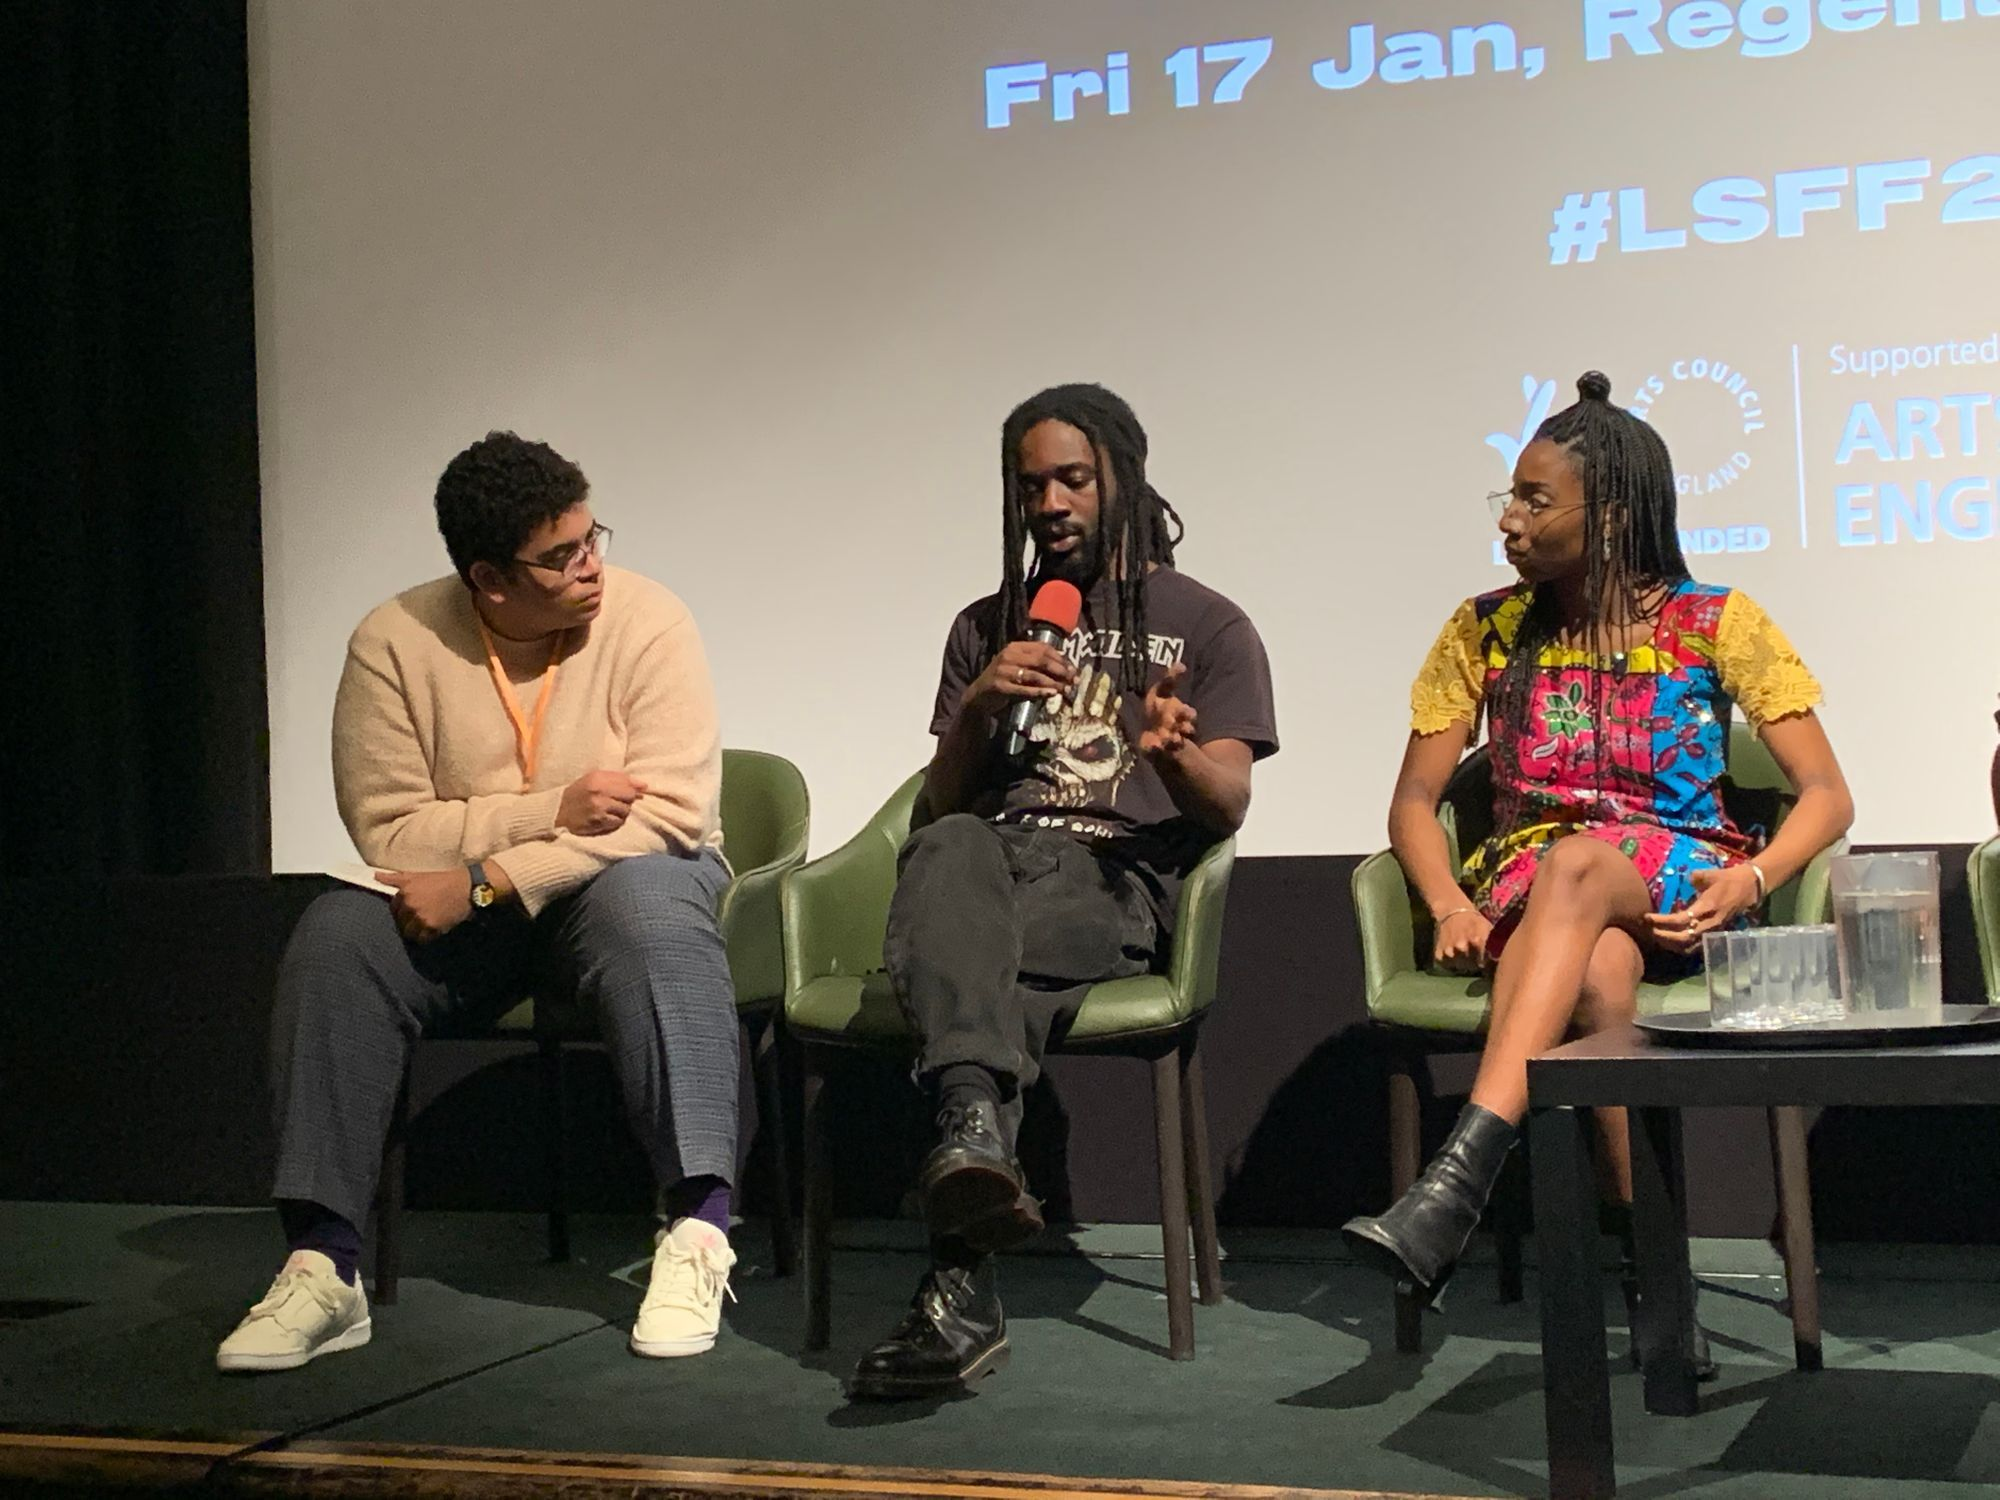 artistic director philip ilson at london short film festival in london talk on stage